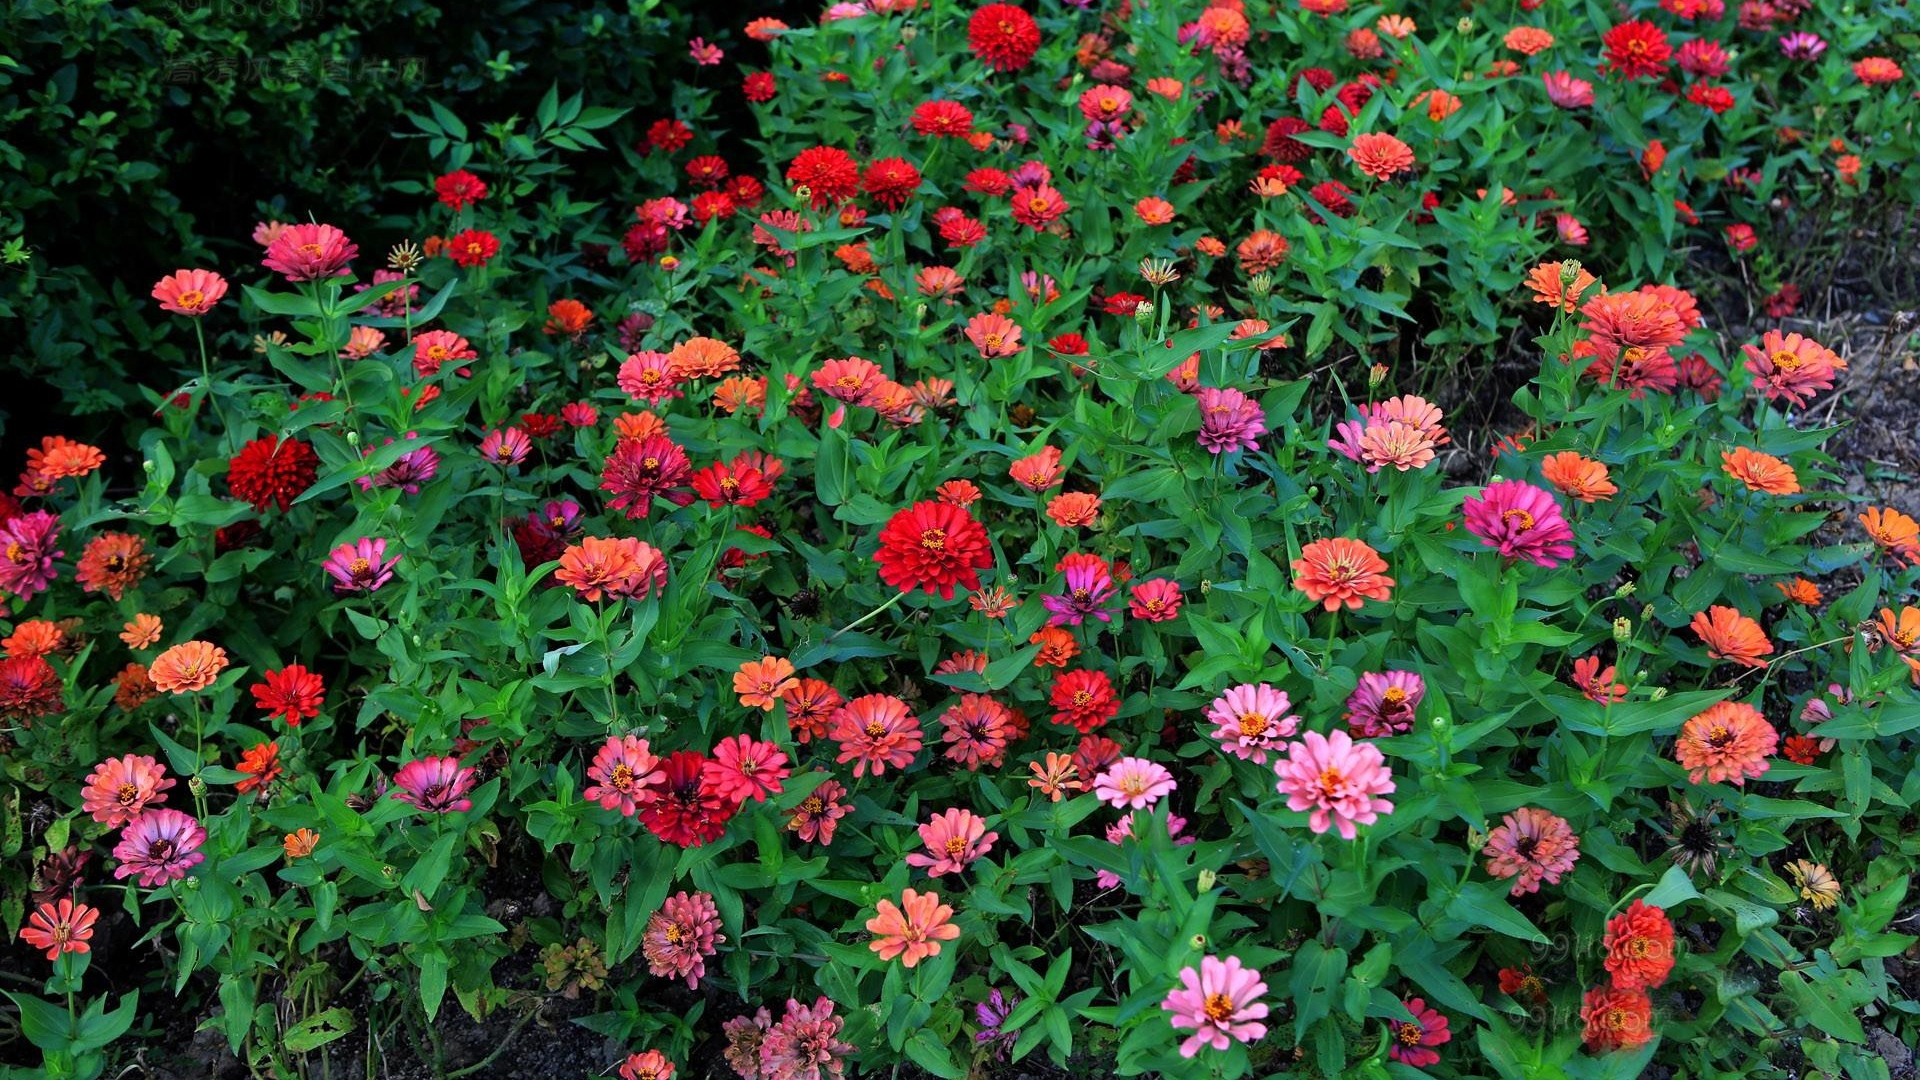 zinnias flowers colorful flowerbed greens x